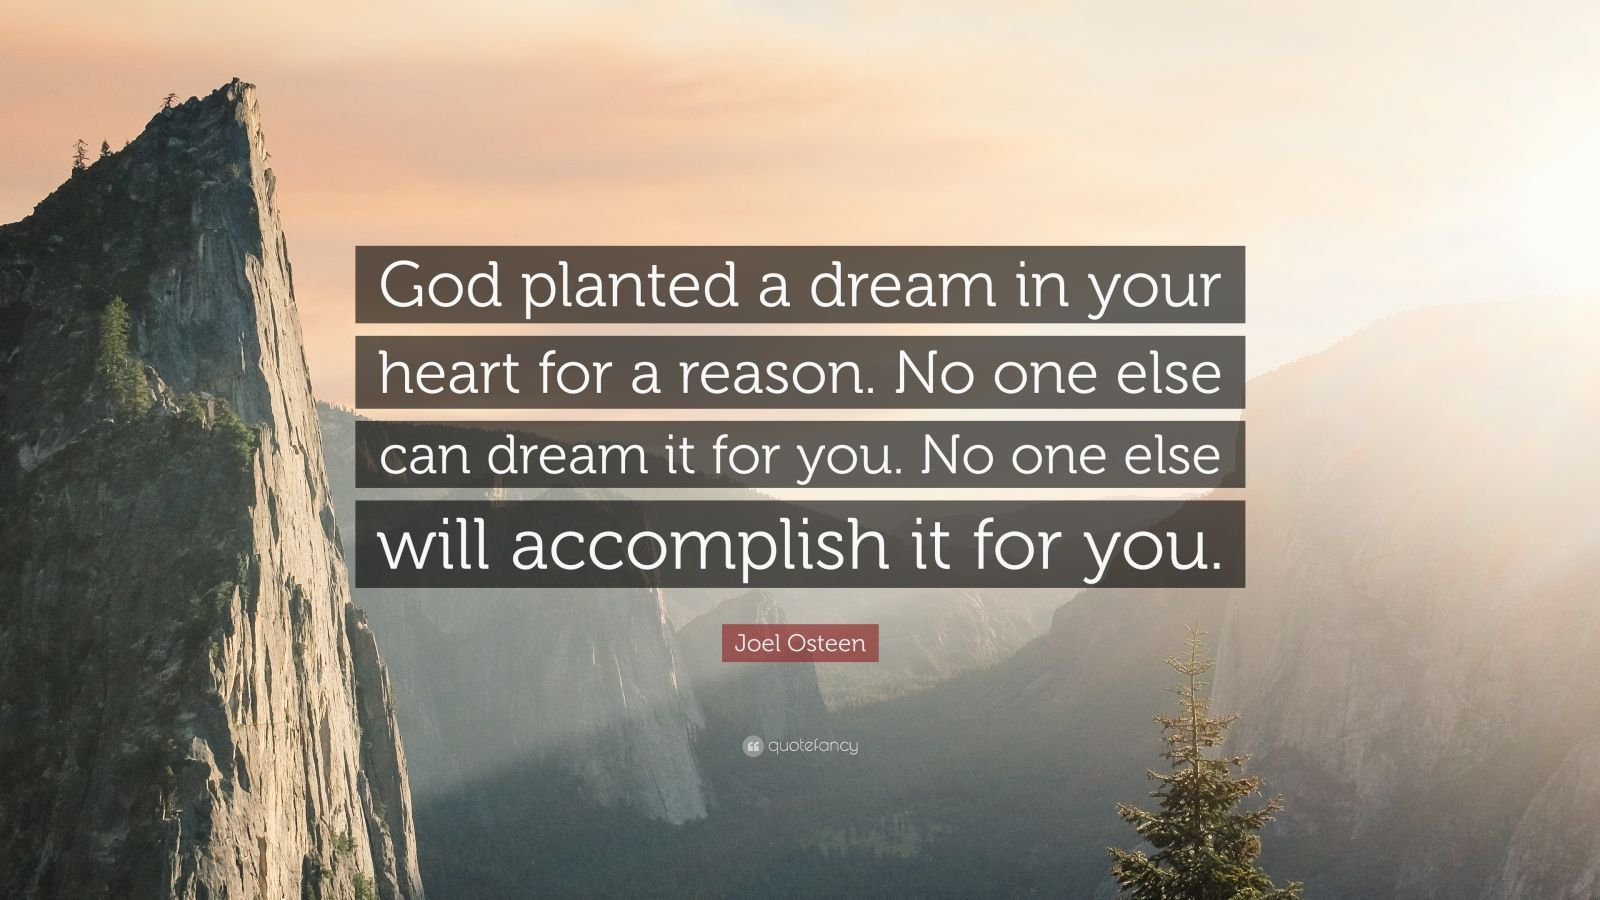 """Joel Osteen Quote: """"God planted a dream in your heart for a reason. No one else can dream it for you. No one else will accomplish it for you."""""""